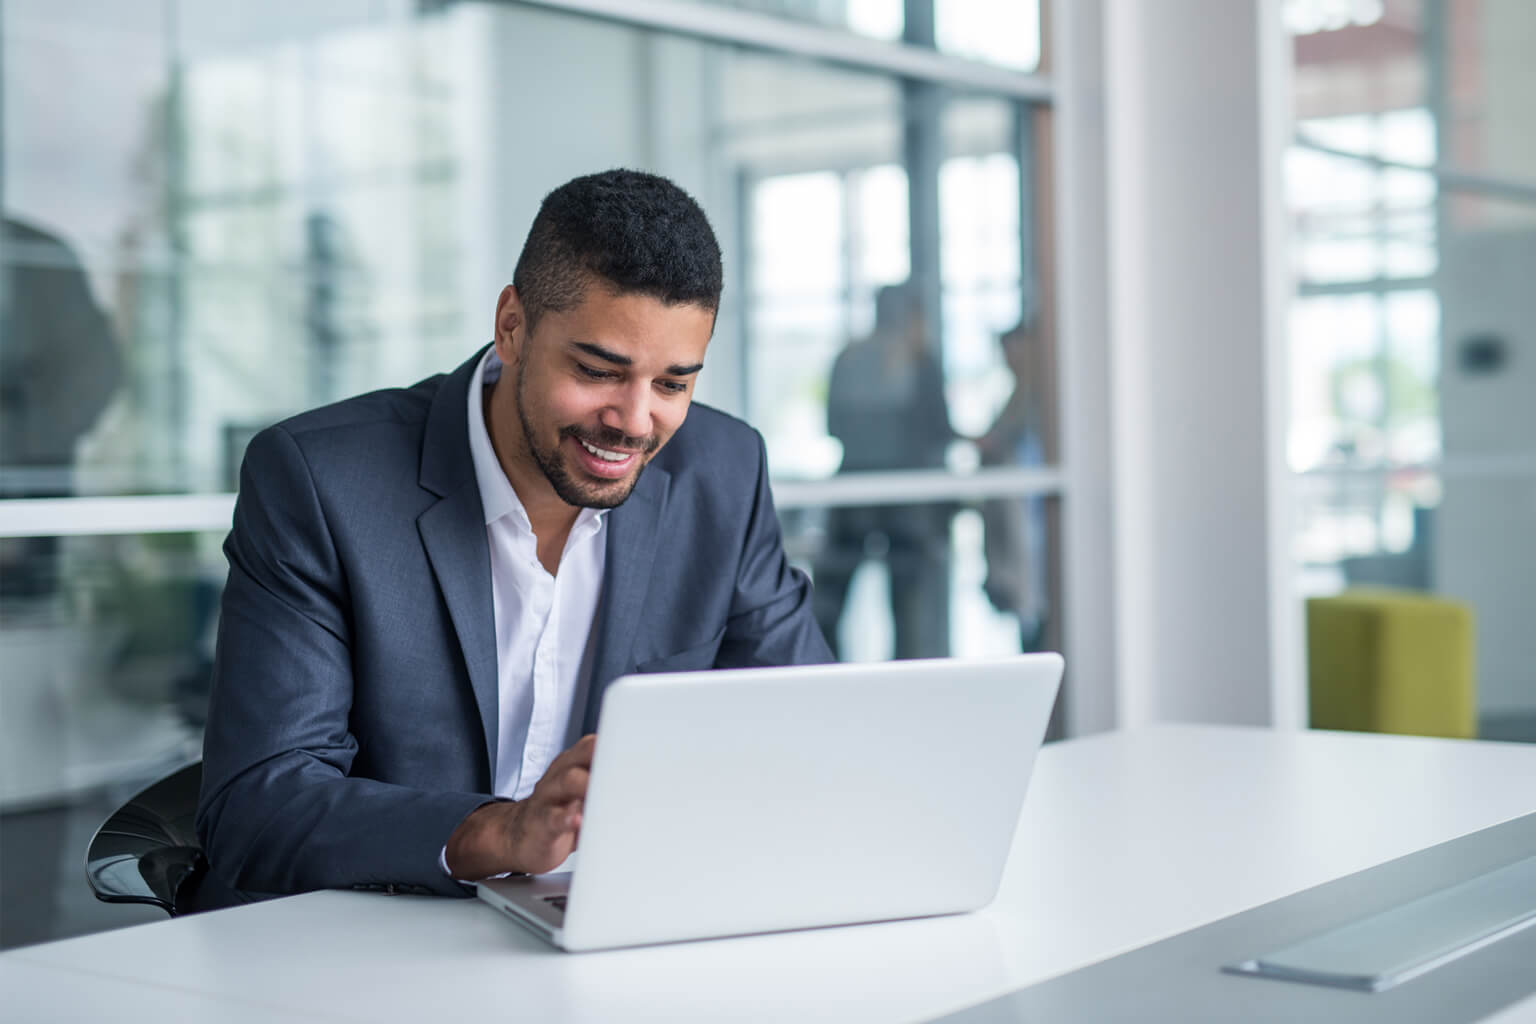 Guy sitting in front of computer